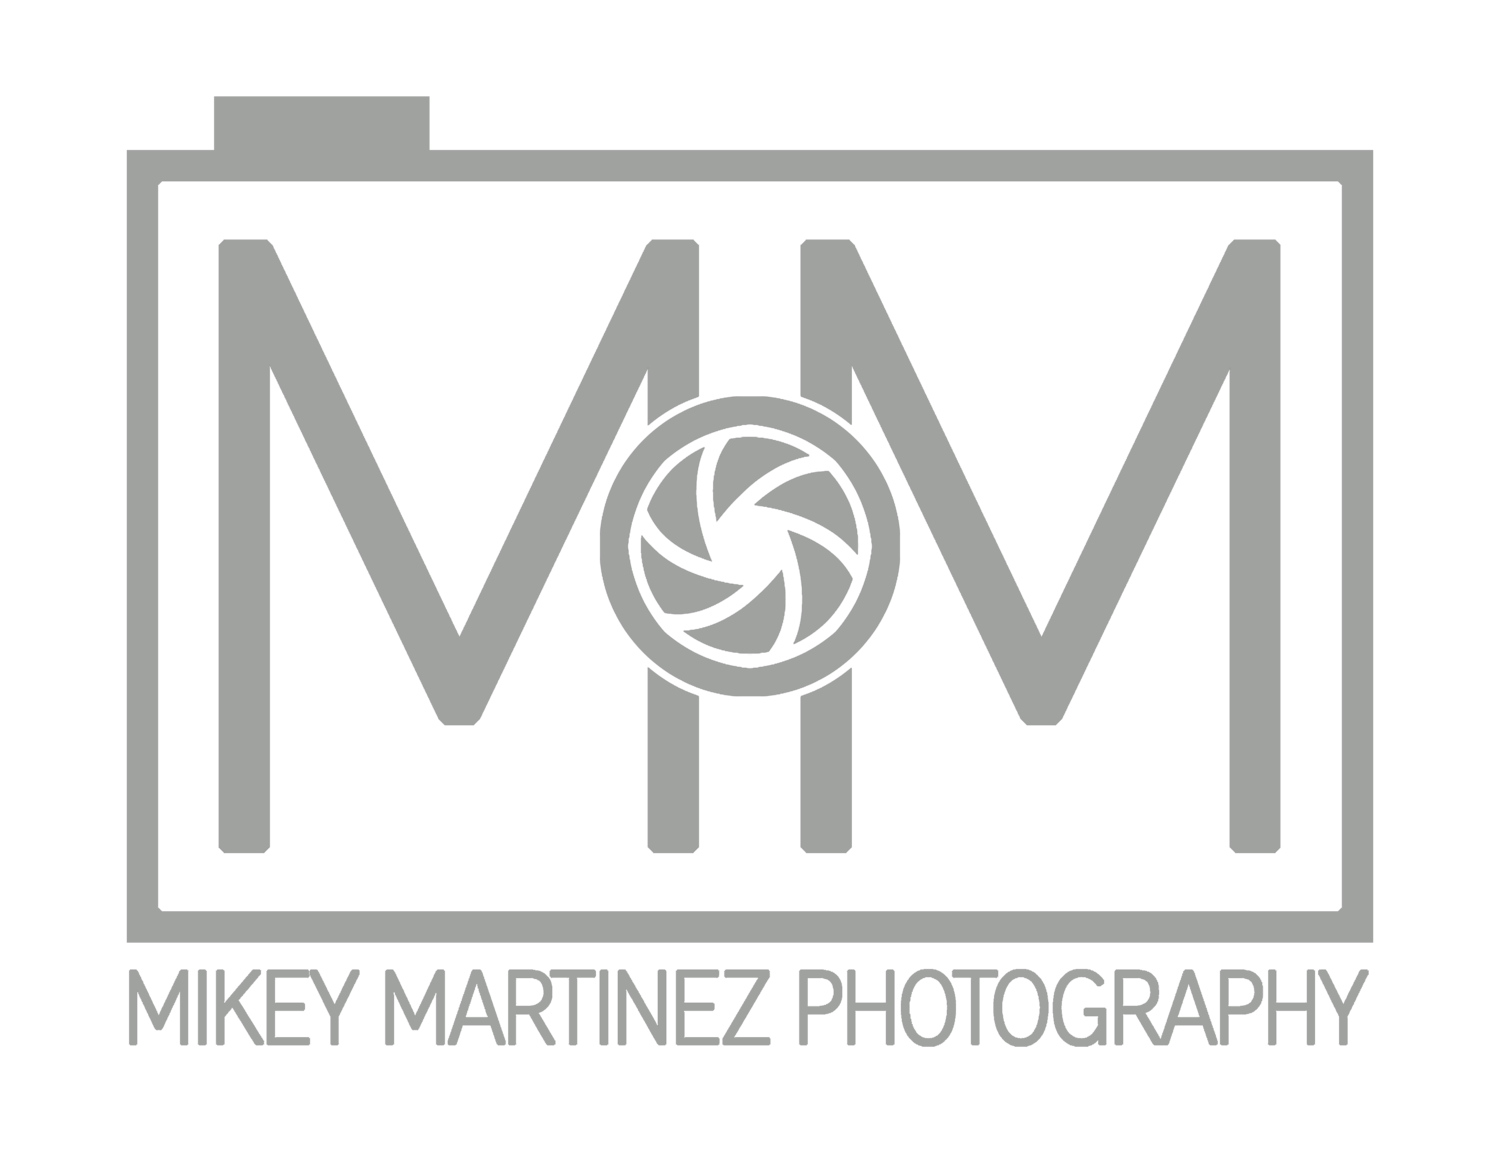 Mikey Martinez Photography